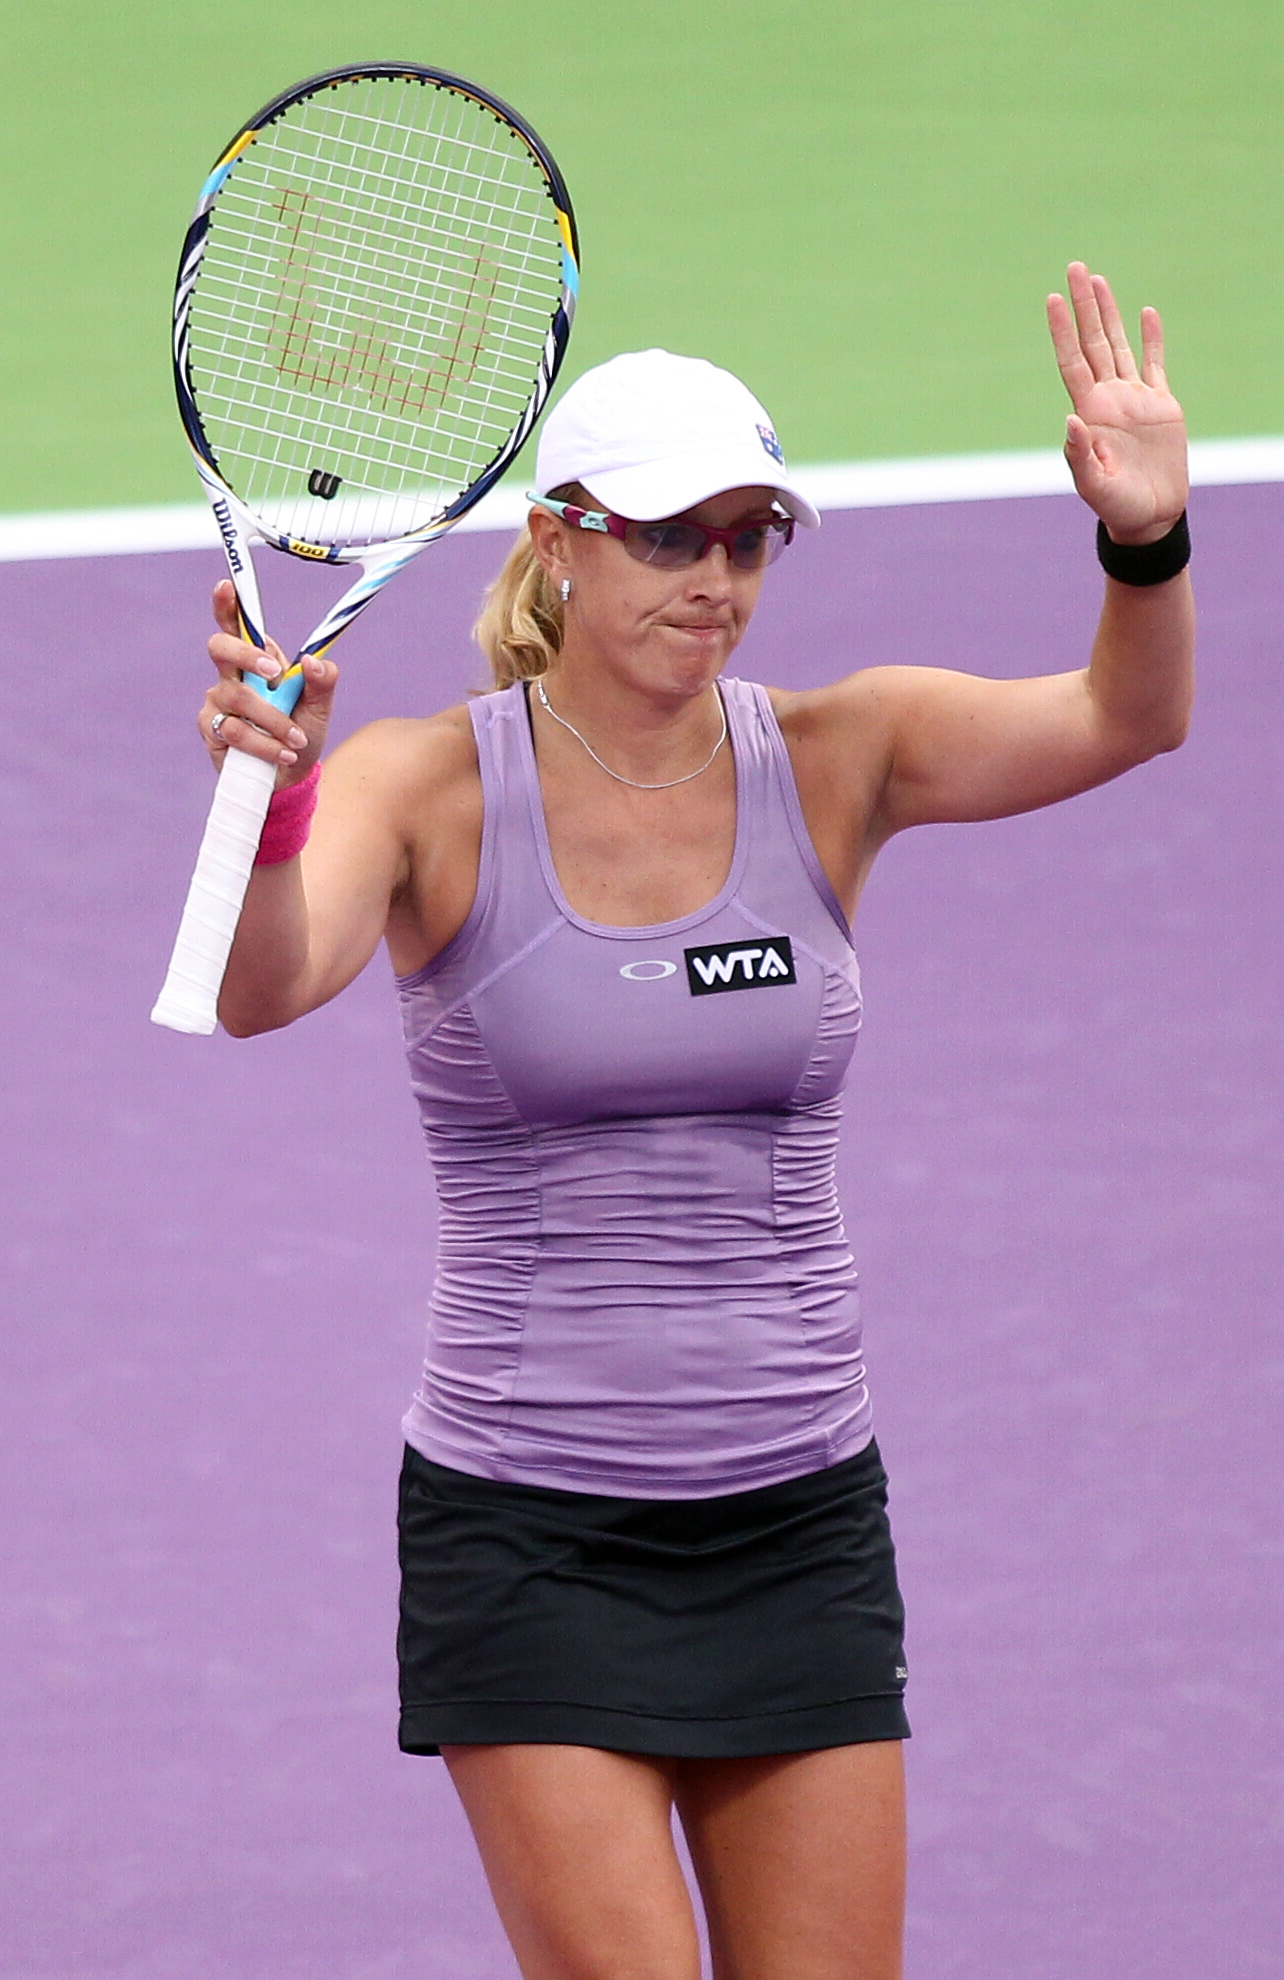 Anastasia Rodionova of Australia reacts after losing a point against Jie Zheng of China during the first day of the WTA Qatar Ladies Open in Doha, Qatar, Monday, Feb. 11, 2013. (AP Photo/Osama Faisal)